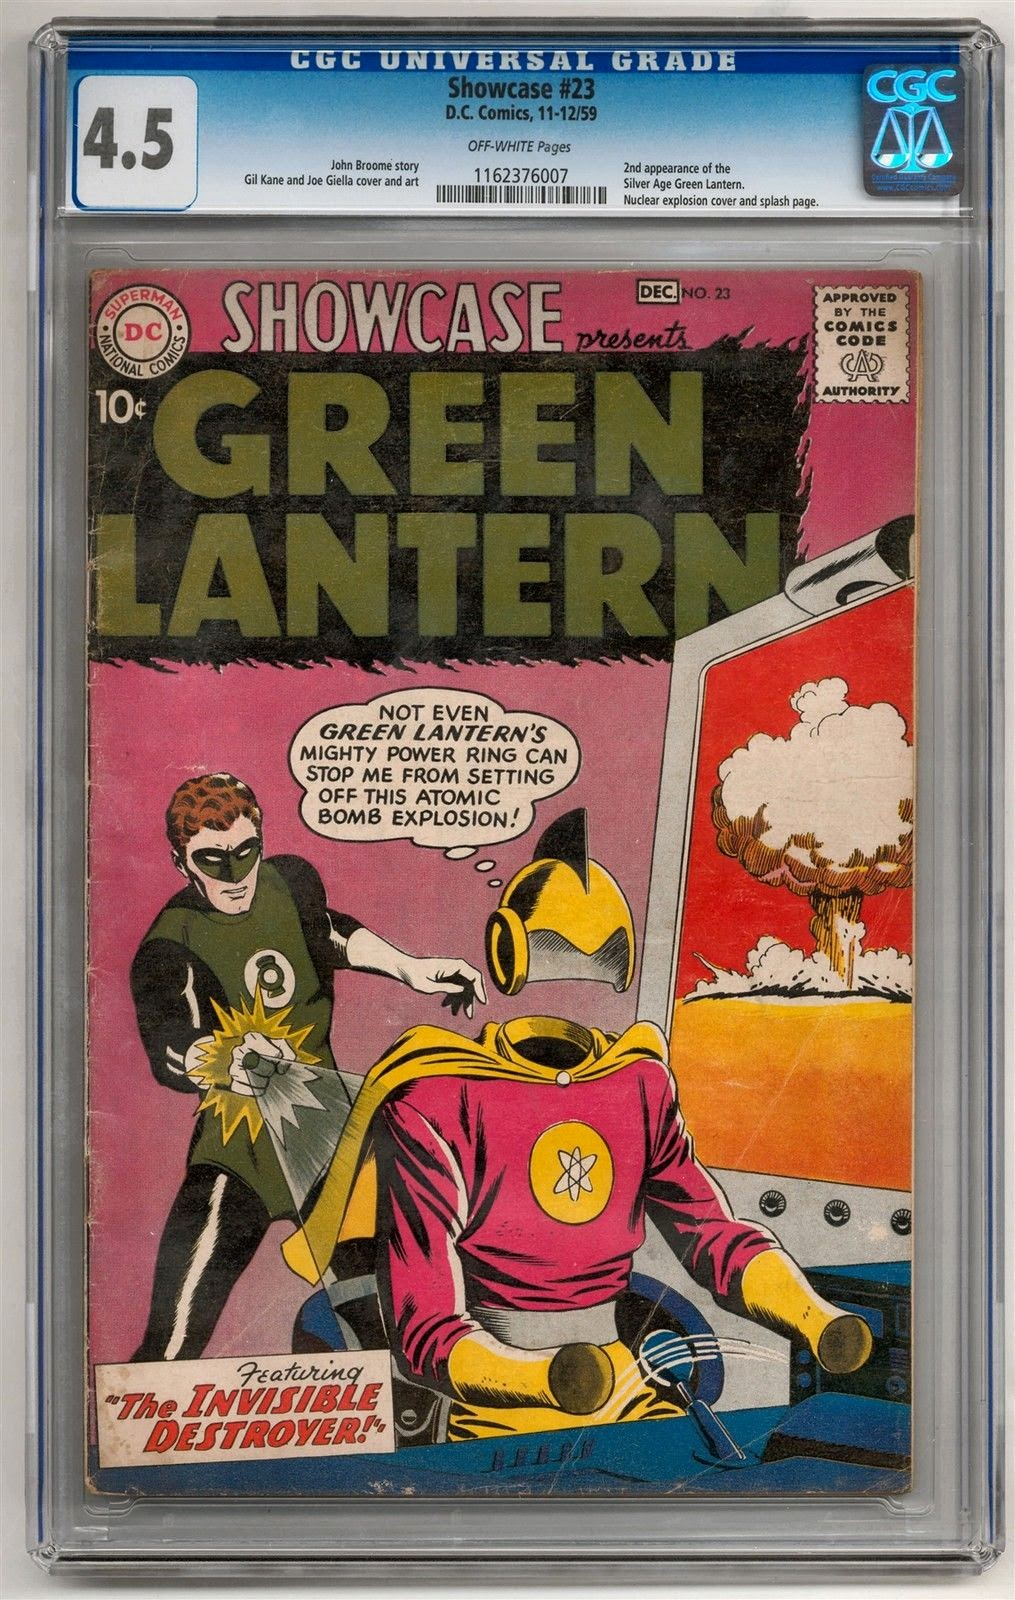 http://www.totalcomicmayhem.com/2014/12/showcase-23-cgc-45.html